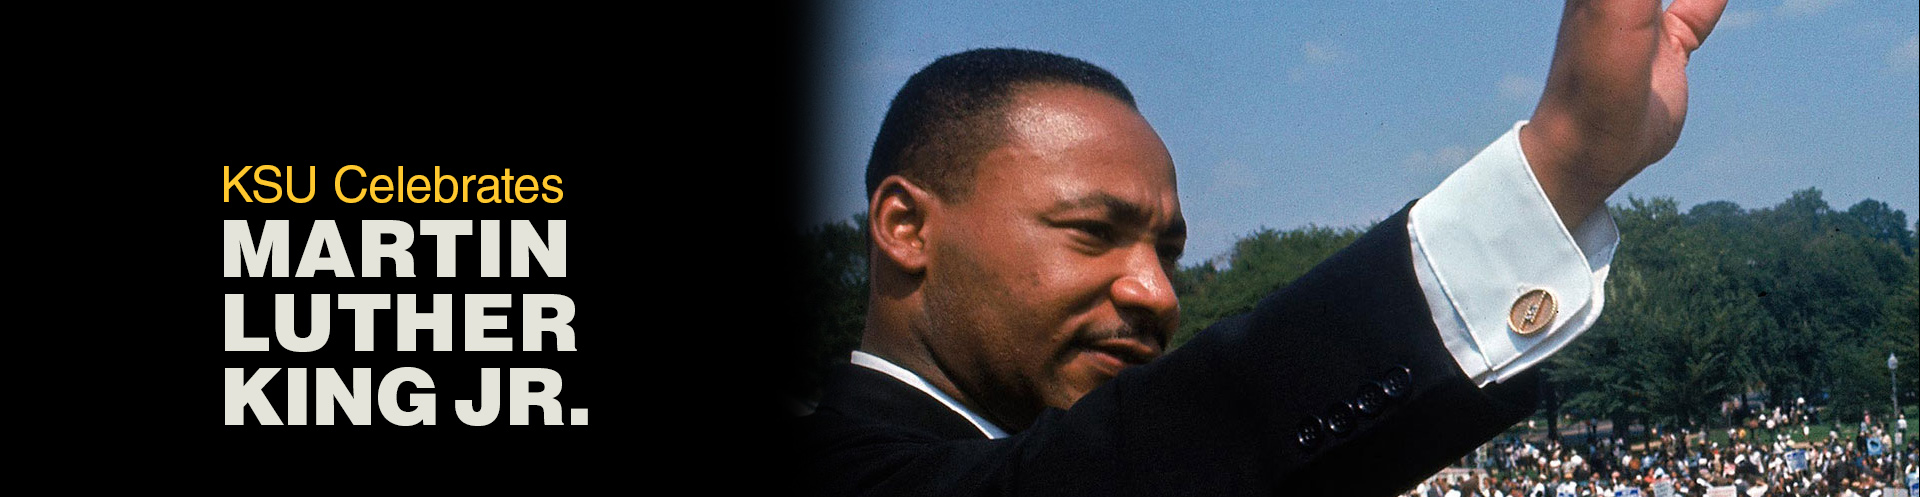 Martin Luther King Jr. Week 2018